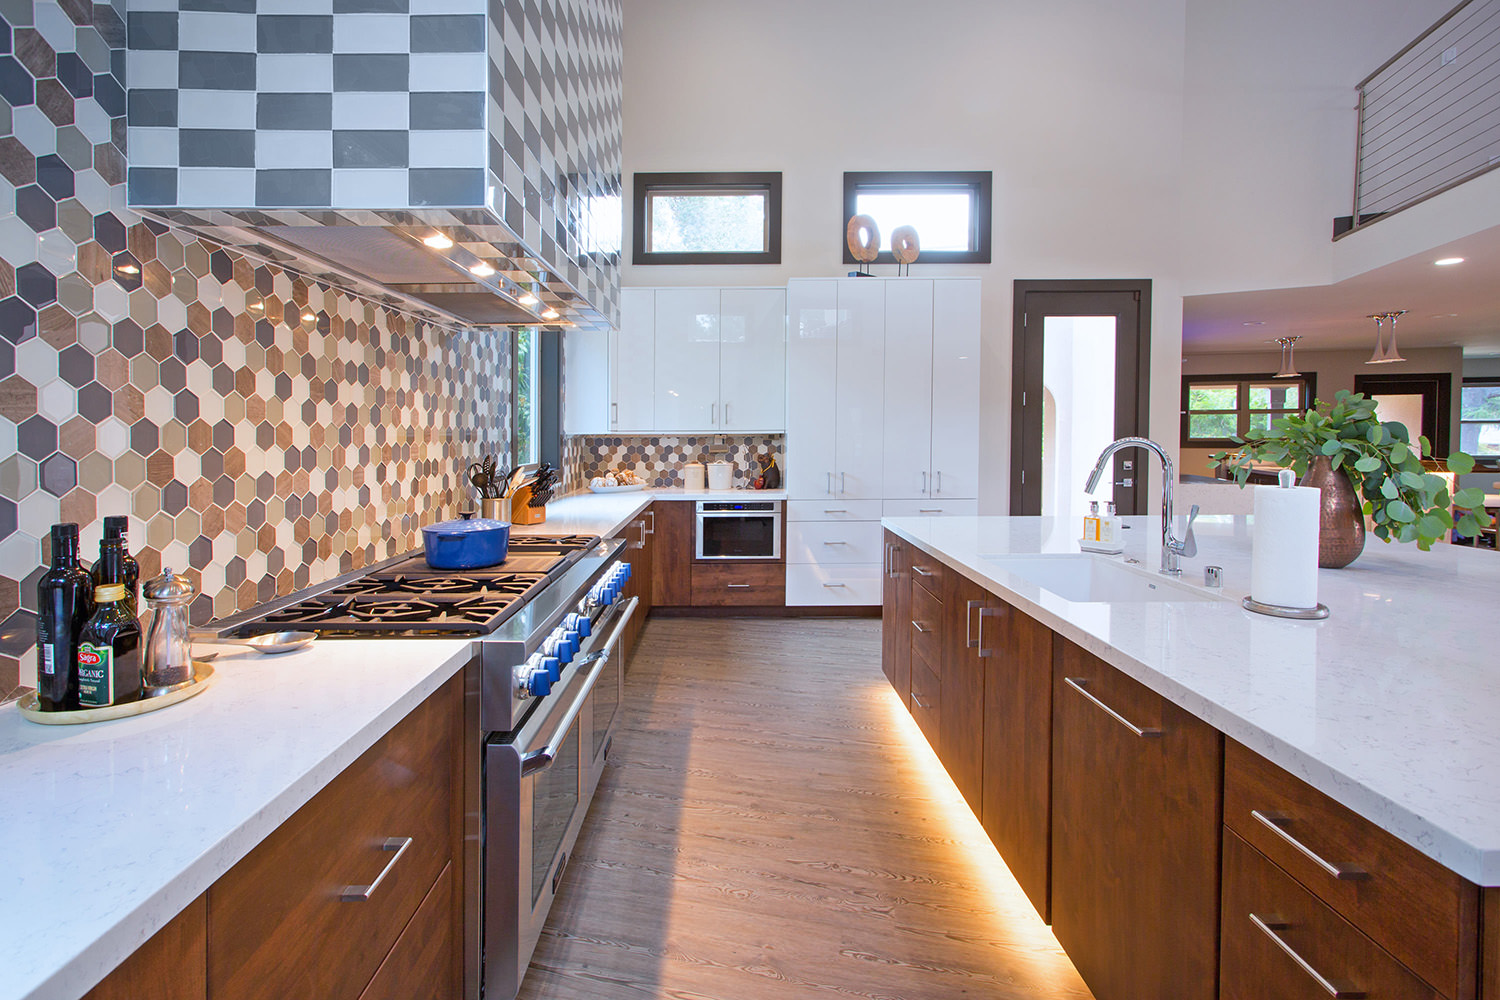 kitchen-interior-design-los-altos-california-ktj-design-co-9.jpg